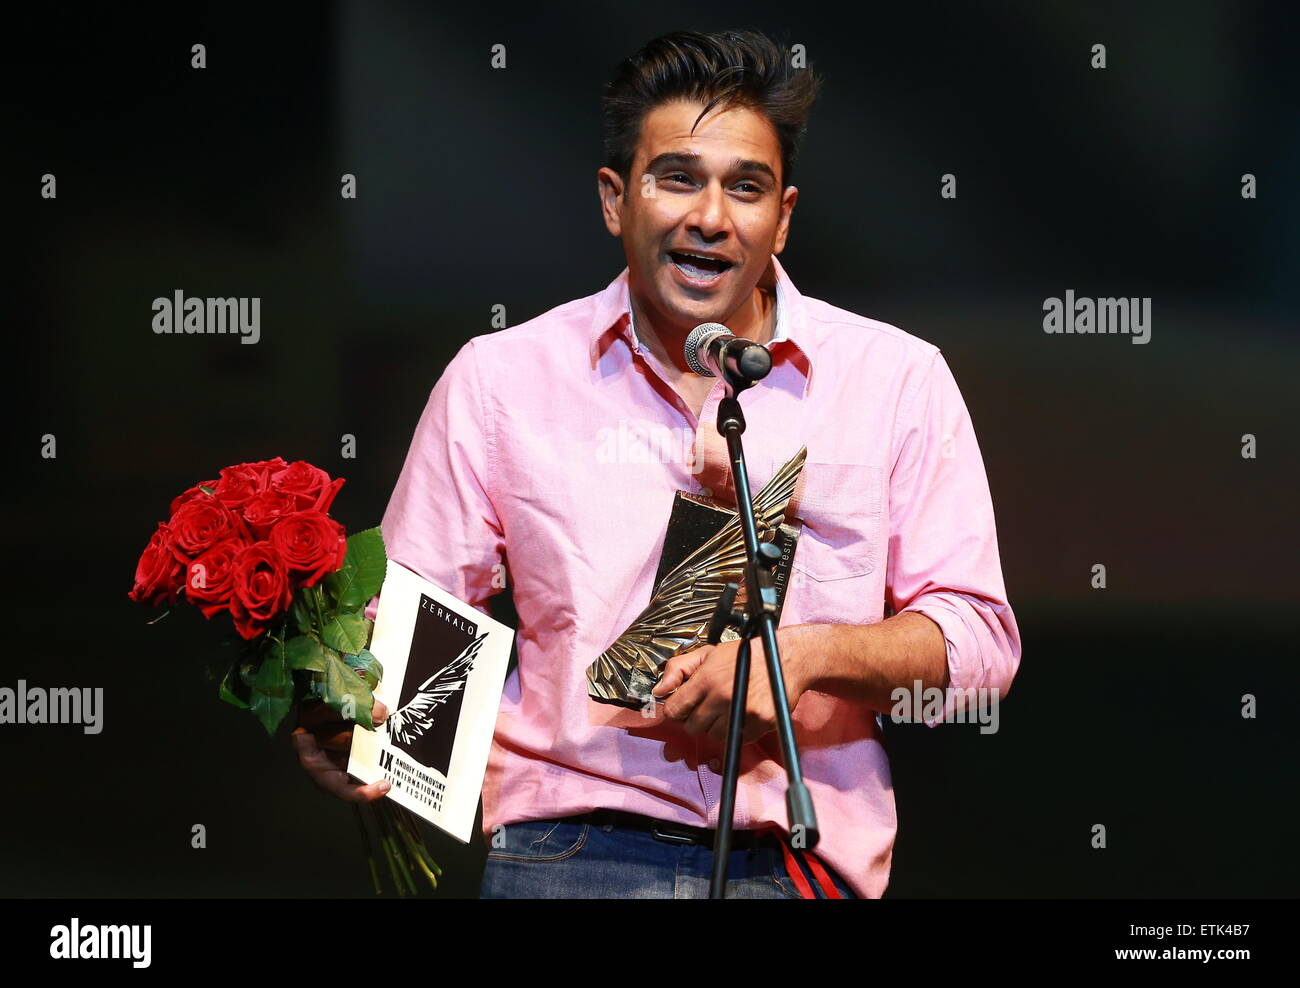 IVANOVO REGION, RUSSIA. JUNE 14, 2015. Actor Vivek Gomber receives the Audience award for Indian director Chaitanya - Stock Image